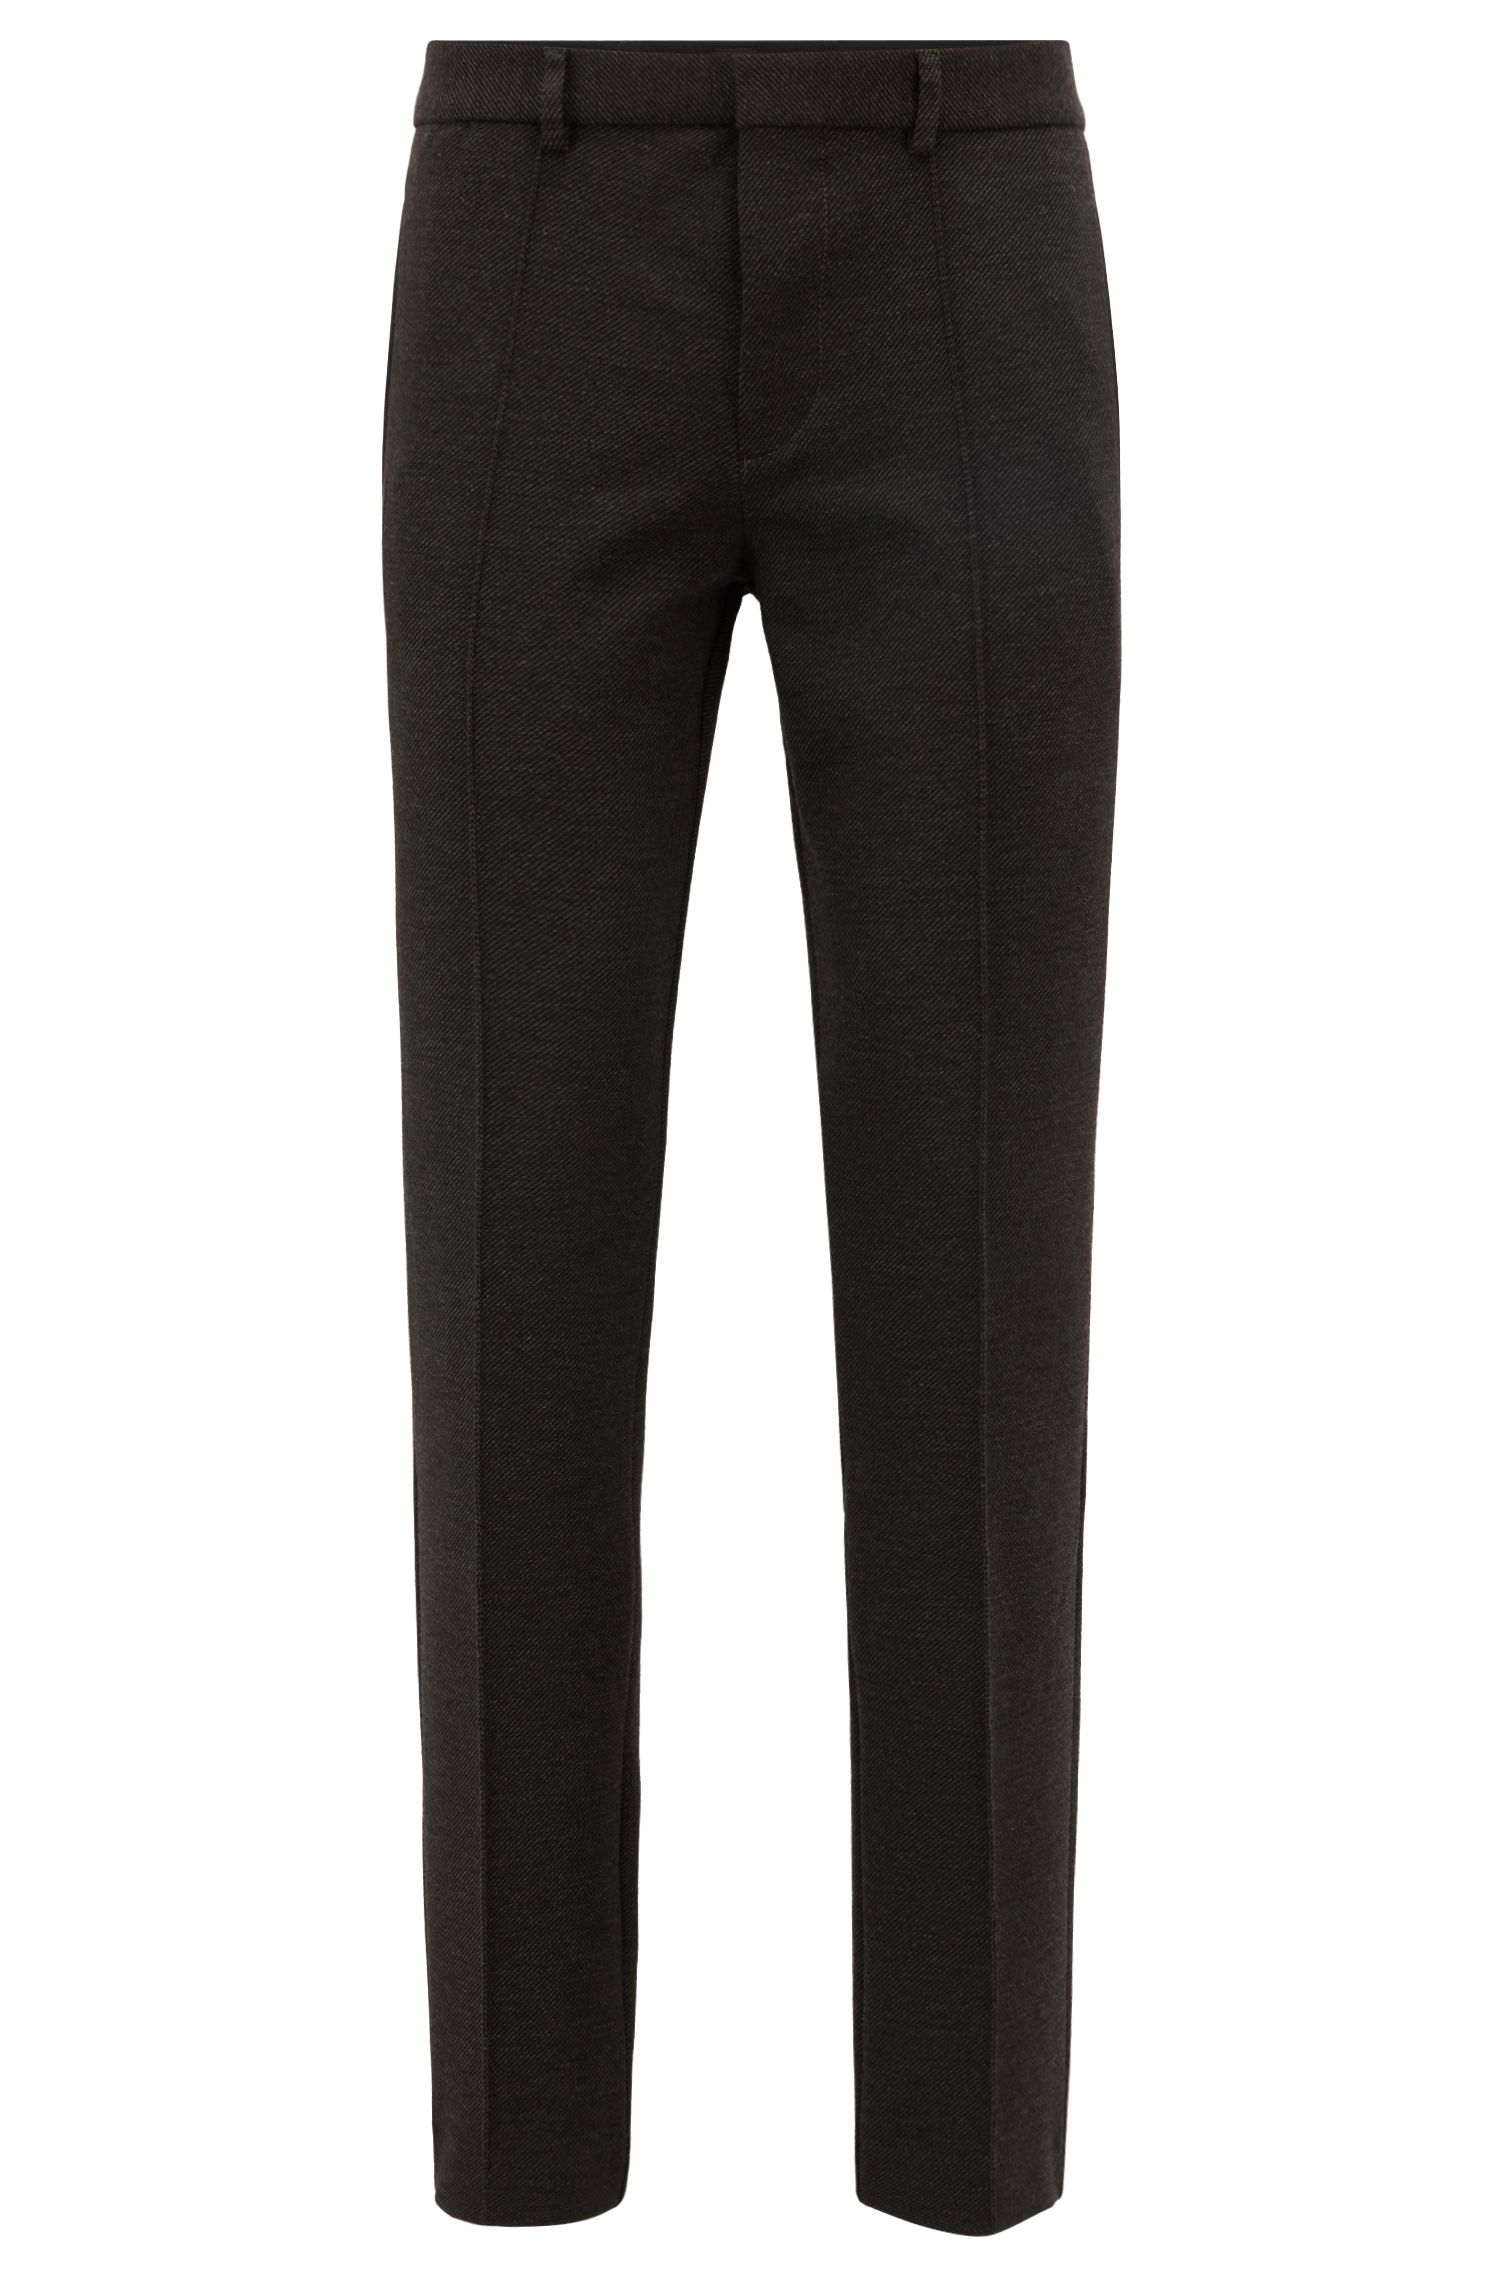 Tapered-fit pants in interlock stretch jersey, Charcoal